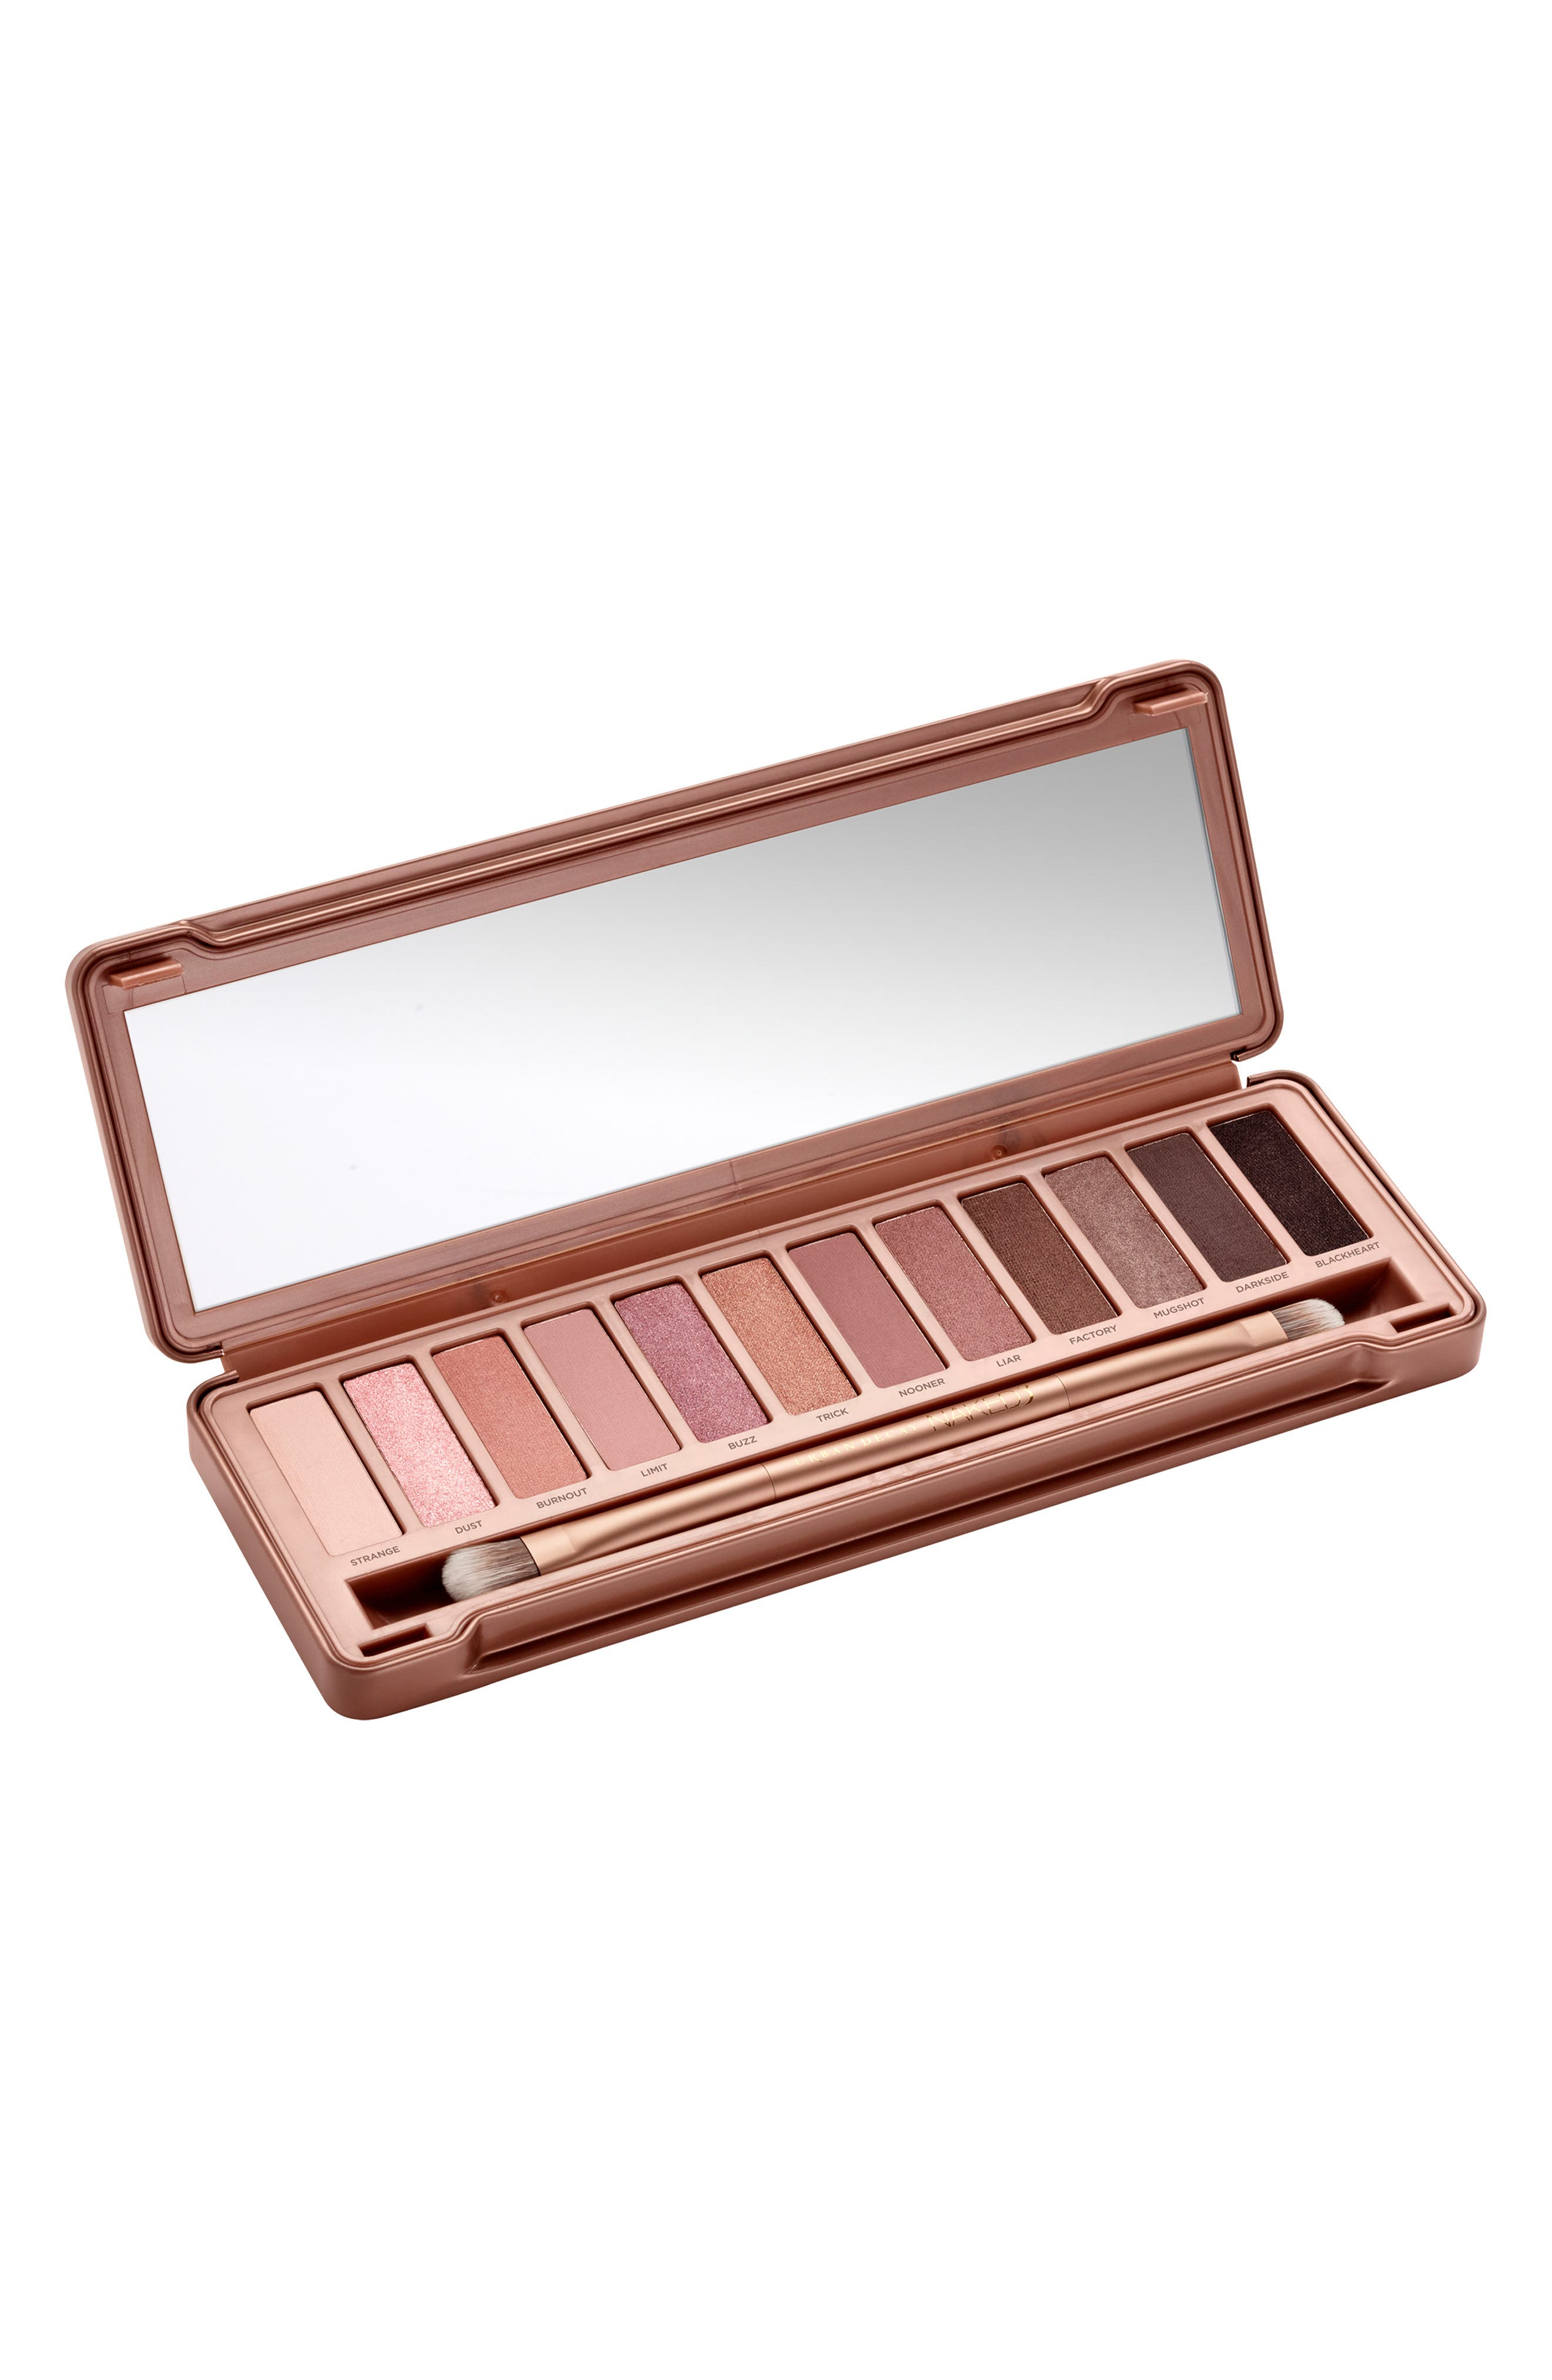 URBAN DECAY,                             Naked3 Palette,                             Main thumbnail 1, color,                             NAKED3 PALETTE